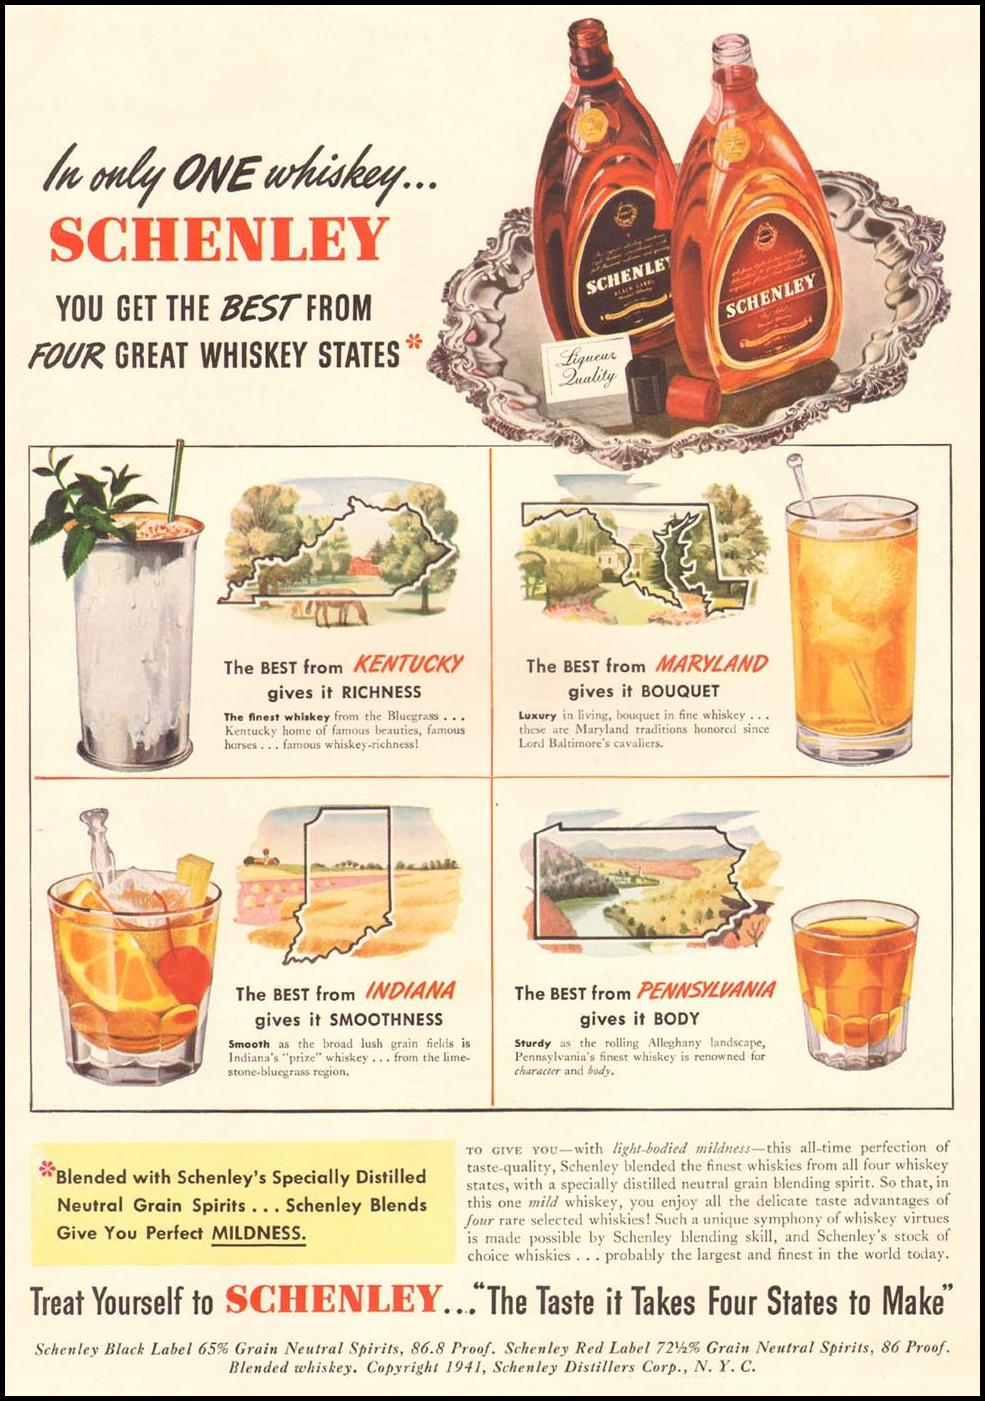 SCHENLEY WHISKEY LIFE 09/29/1941 INSIDE BACK